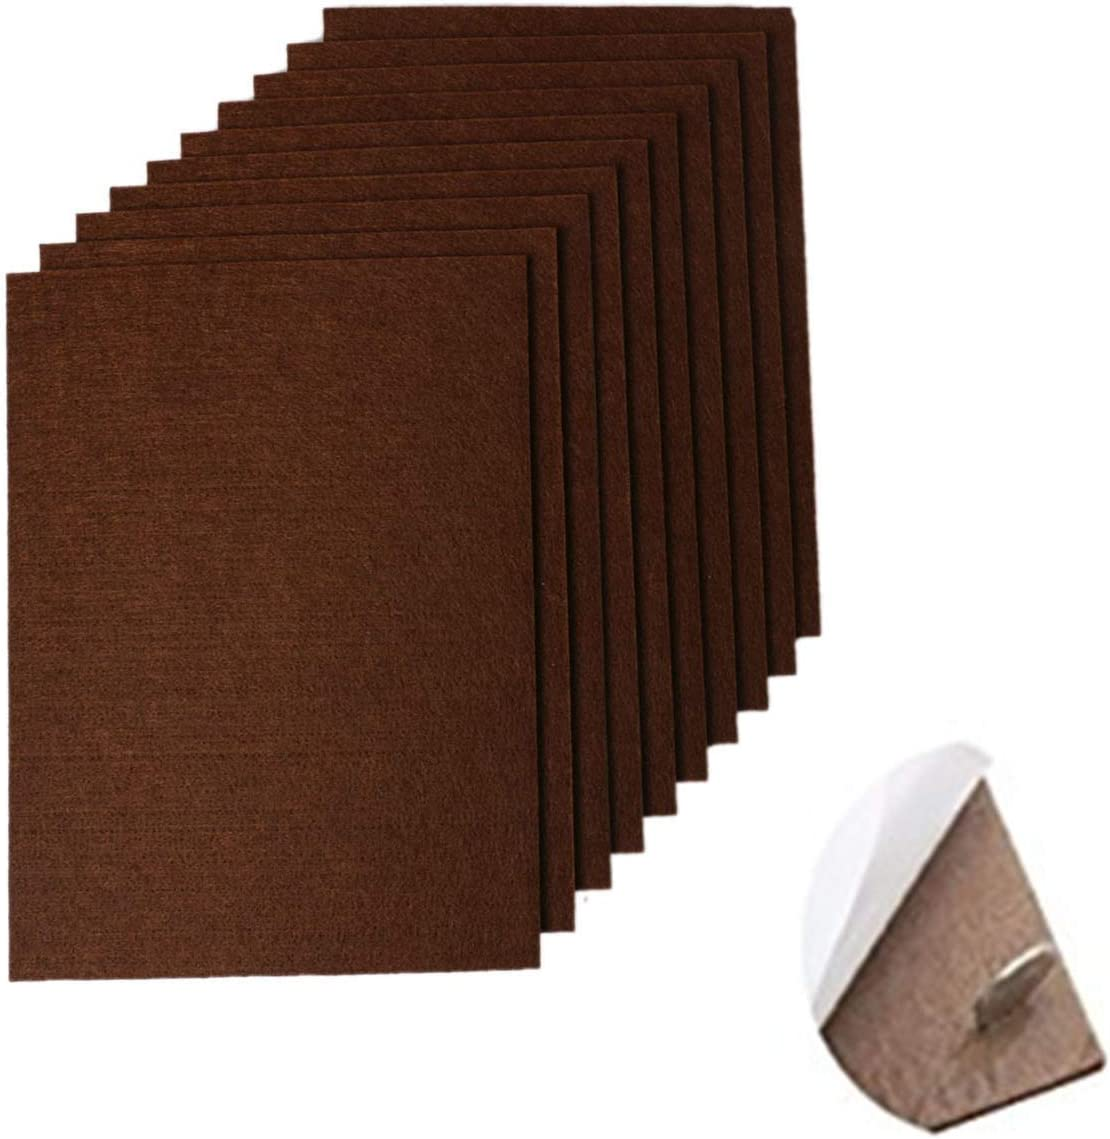 """RERIVER 10-Pack Self-Stick Felt Pads 6"""" X 8"""" X 1/5"""" Thick Heavy Duty Furniture Felt Sheets Wood Floor Protector(Brown)"""